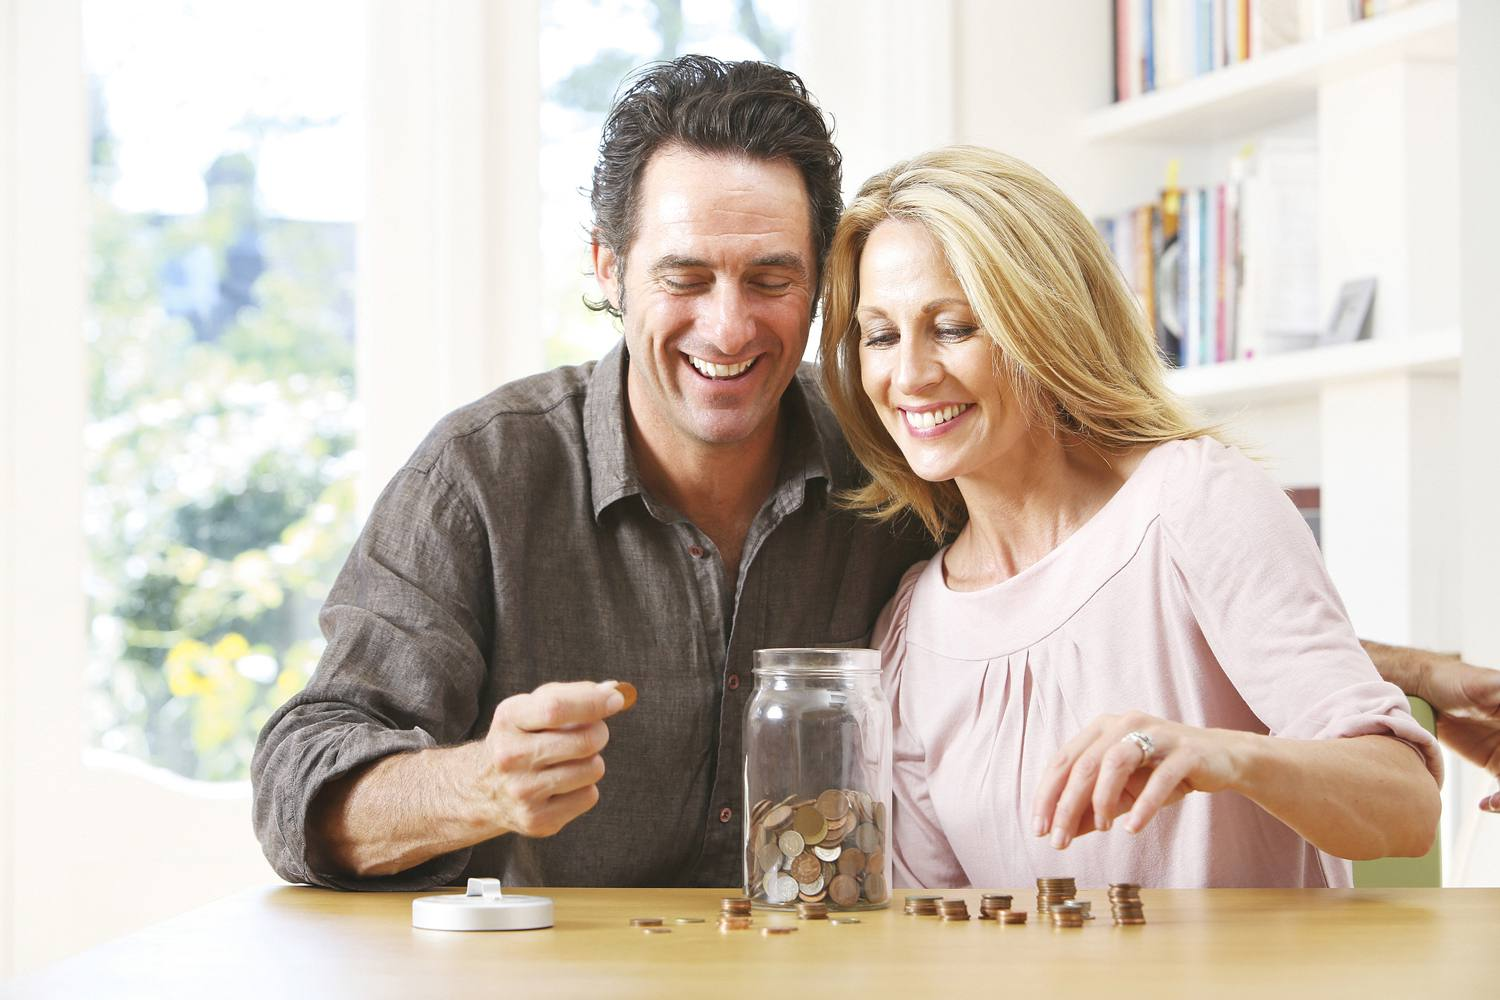 Couple sorting money out of a jar of change